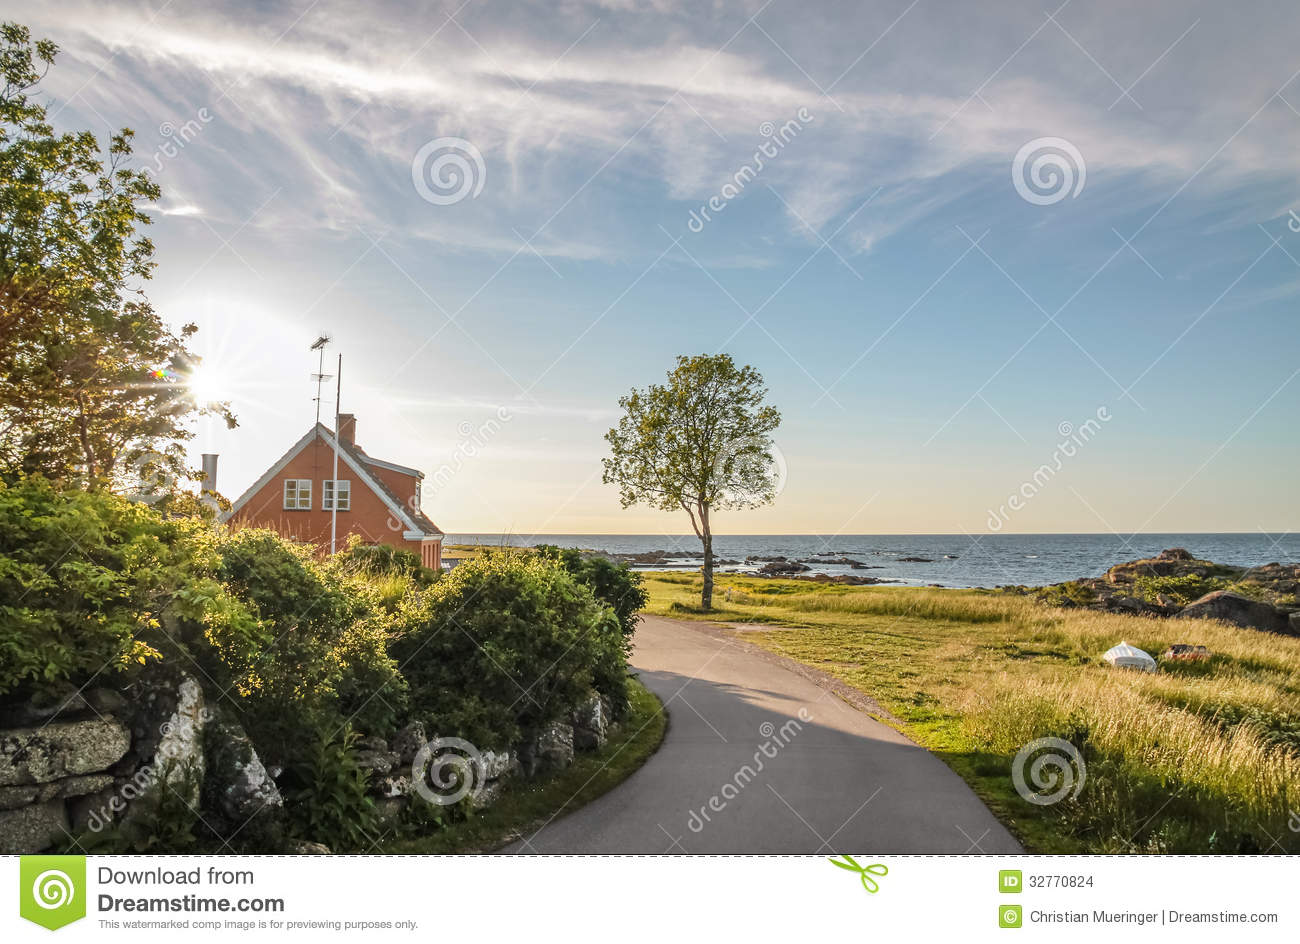 Coastal road on Bornholm